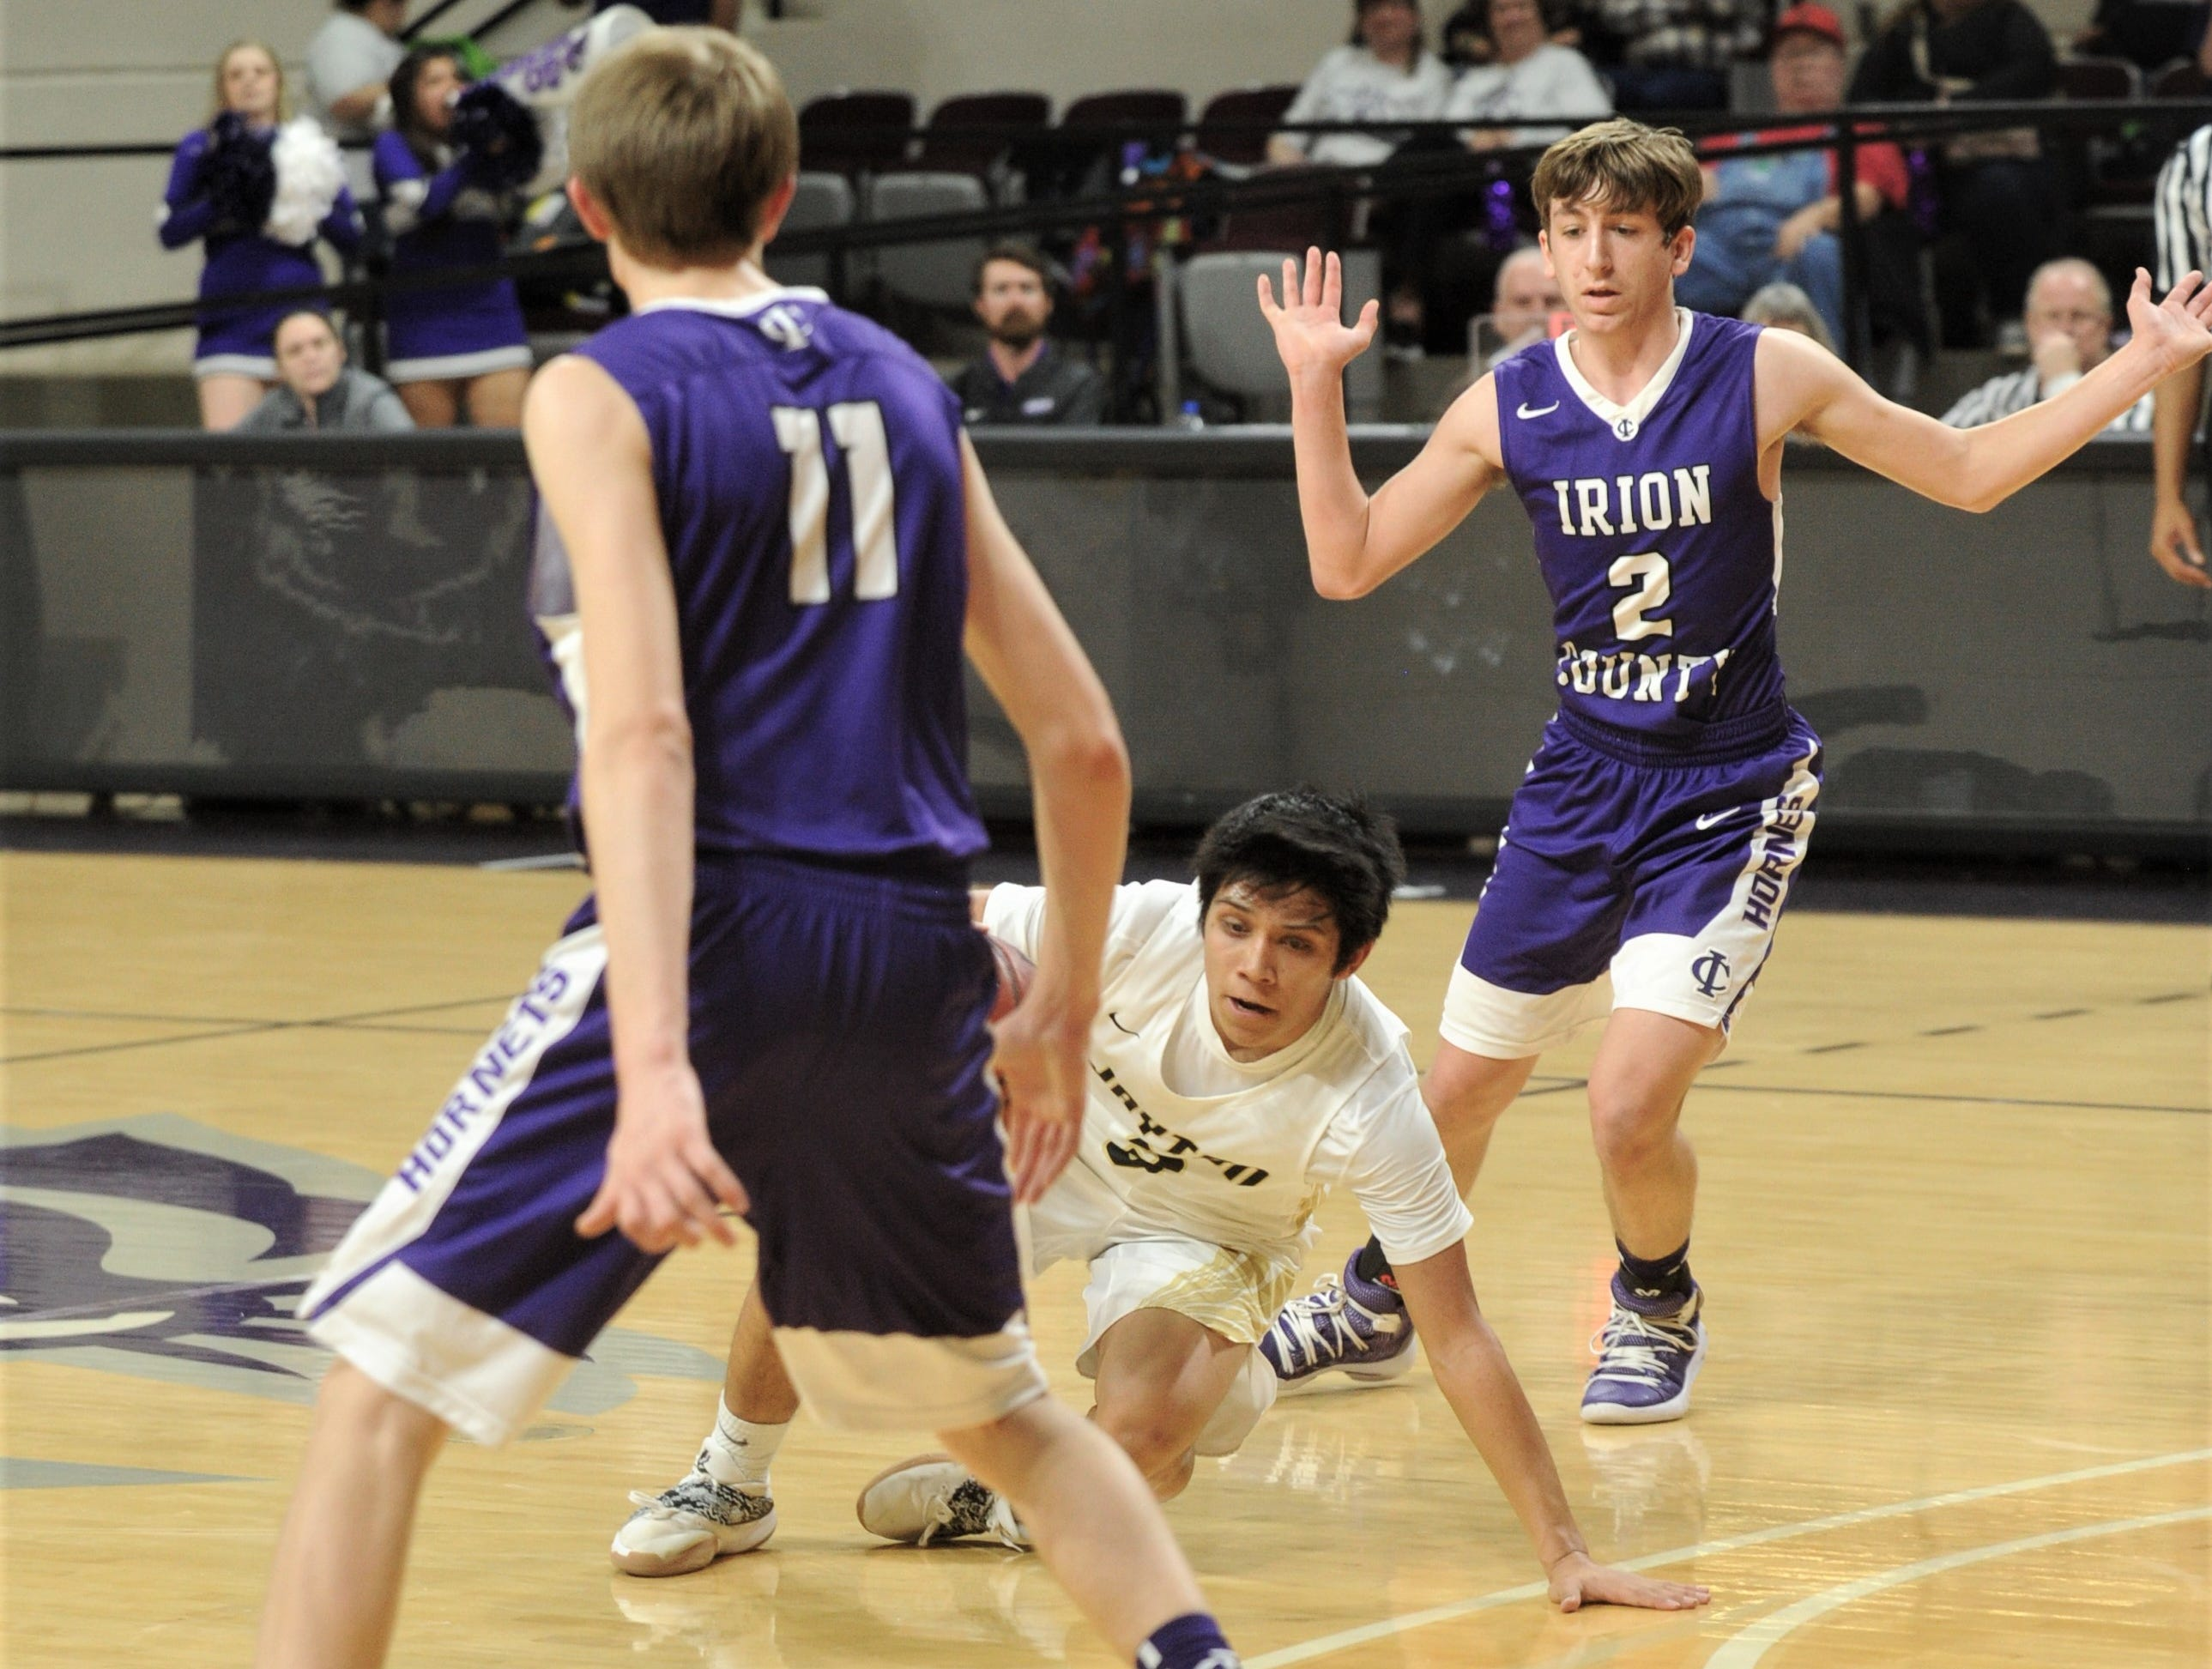 Jayton's Aaron Hernandez, center, falls to the court but keeps possession of the ball as Irion County's Kaden Coucilman (2) and Dawson Sparks defend. The Jaybirds beat Irion County 47-32 in the Region II-1A championship game Saturday, March 2, 2019, at Abilene Christian's Moody Coliseum.